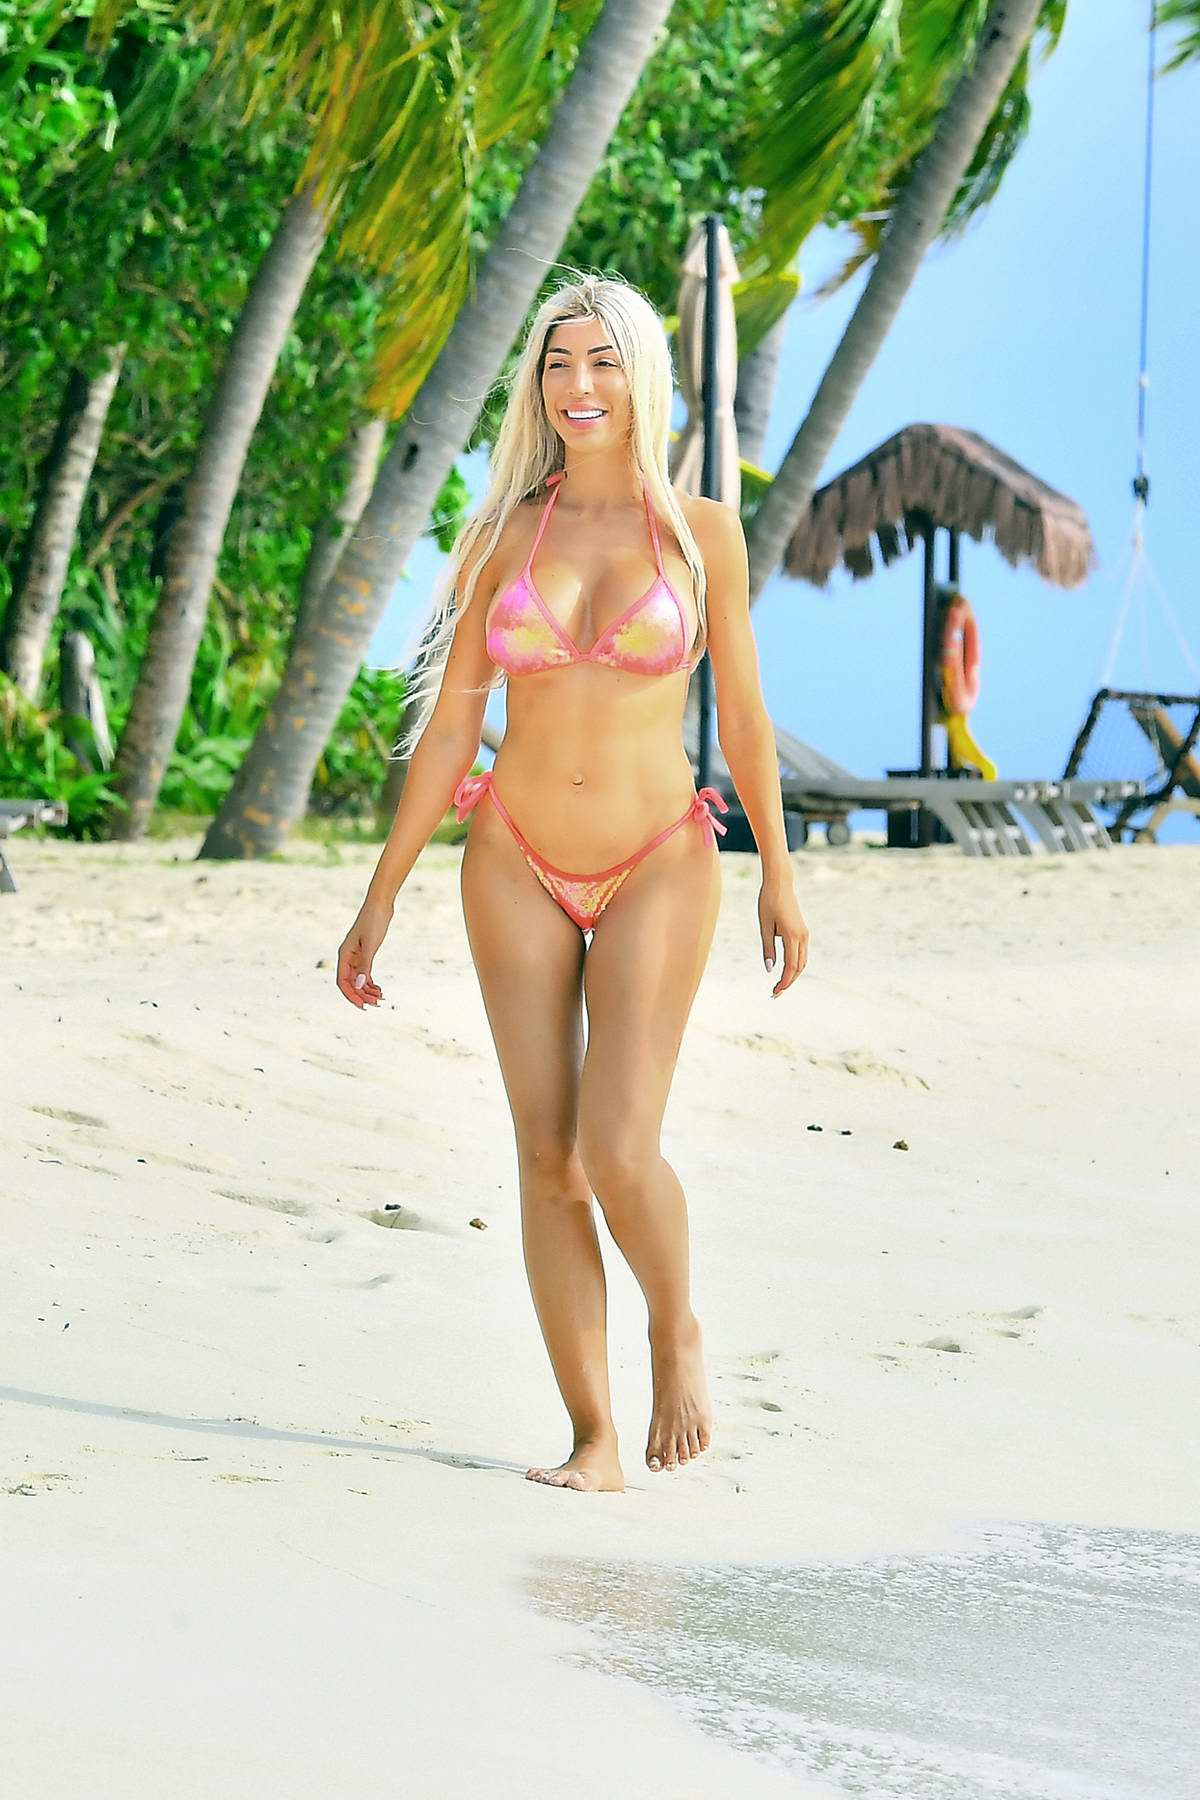 Farrah Abraham enjoys the beach in a bikini while vacationing at the Ayada Resort in the Maldives